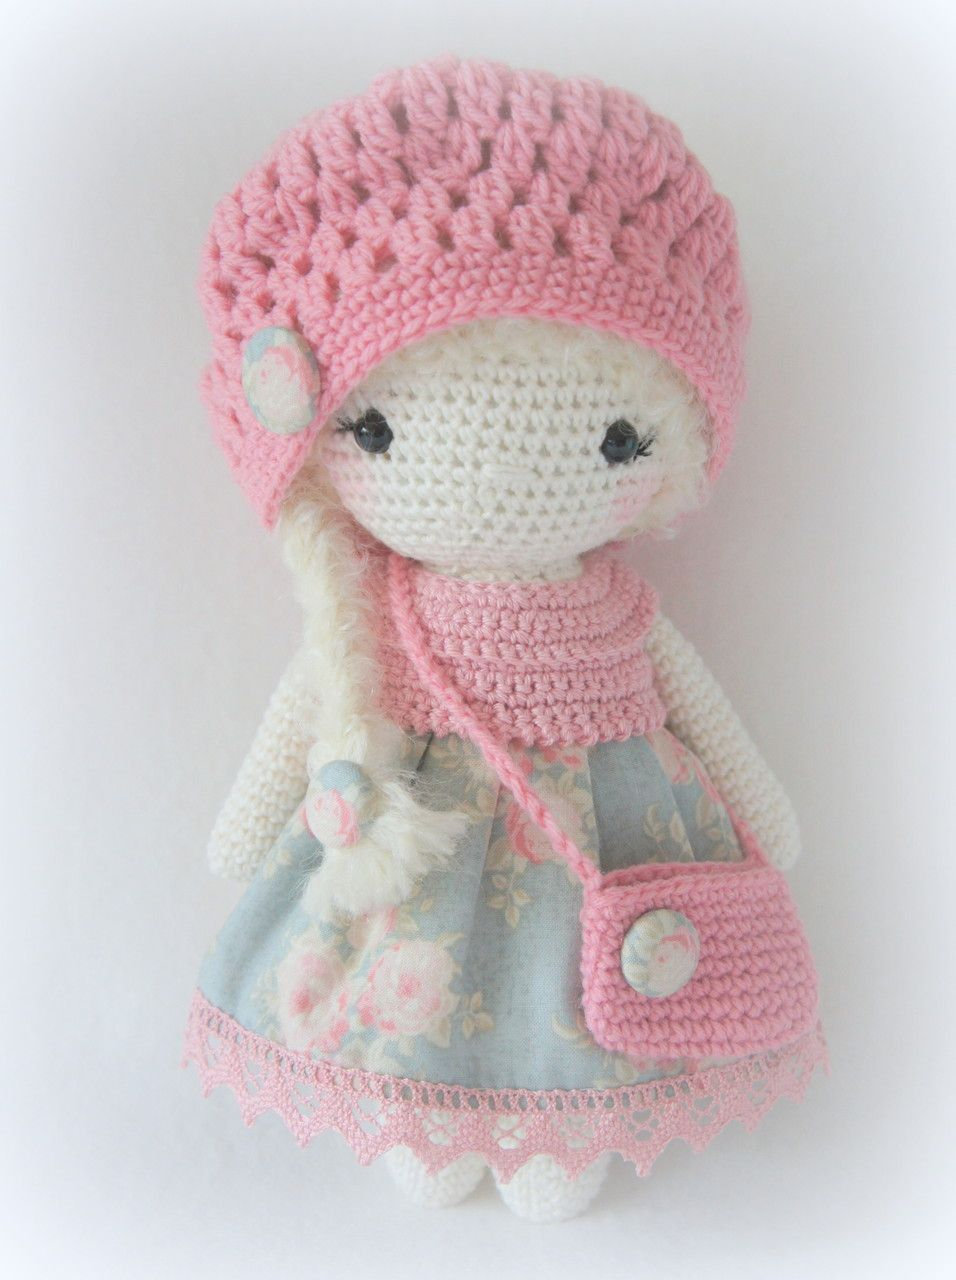 crochet-doll | D :: Doll and Toy | Pinterest | Ich freue mich auf ...